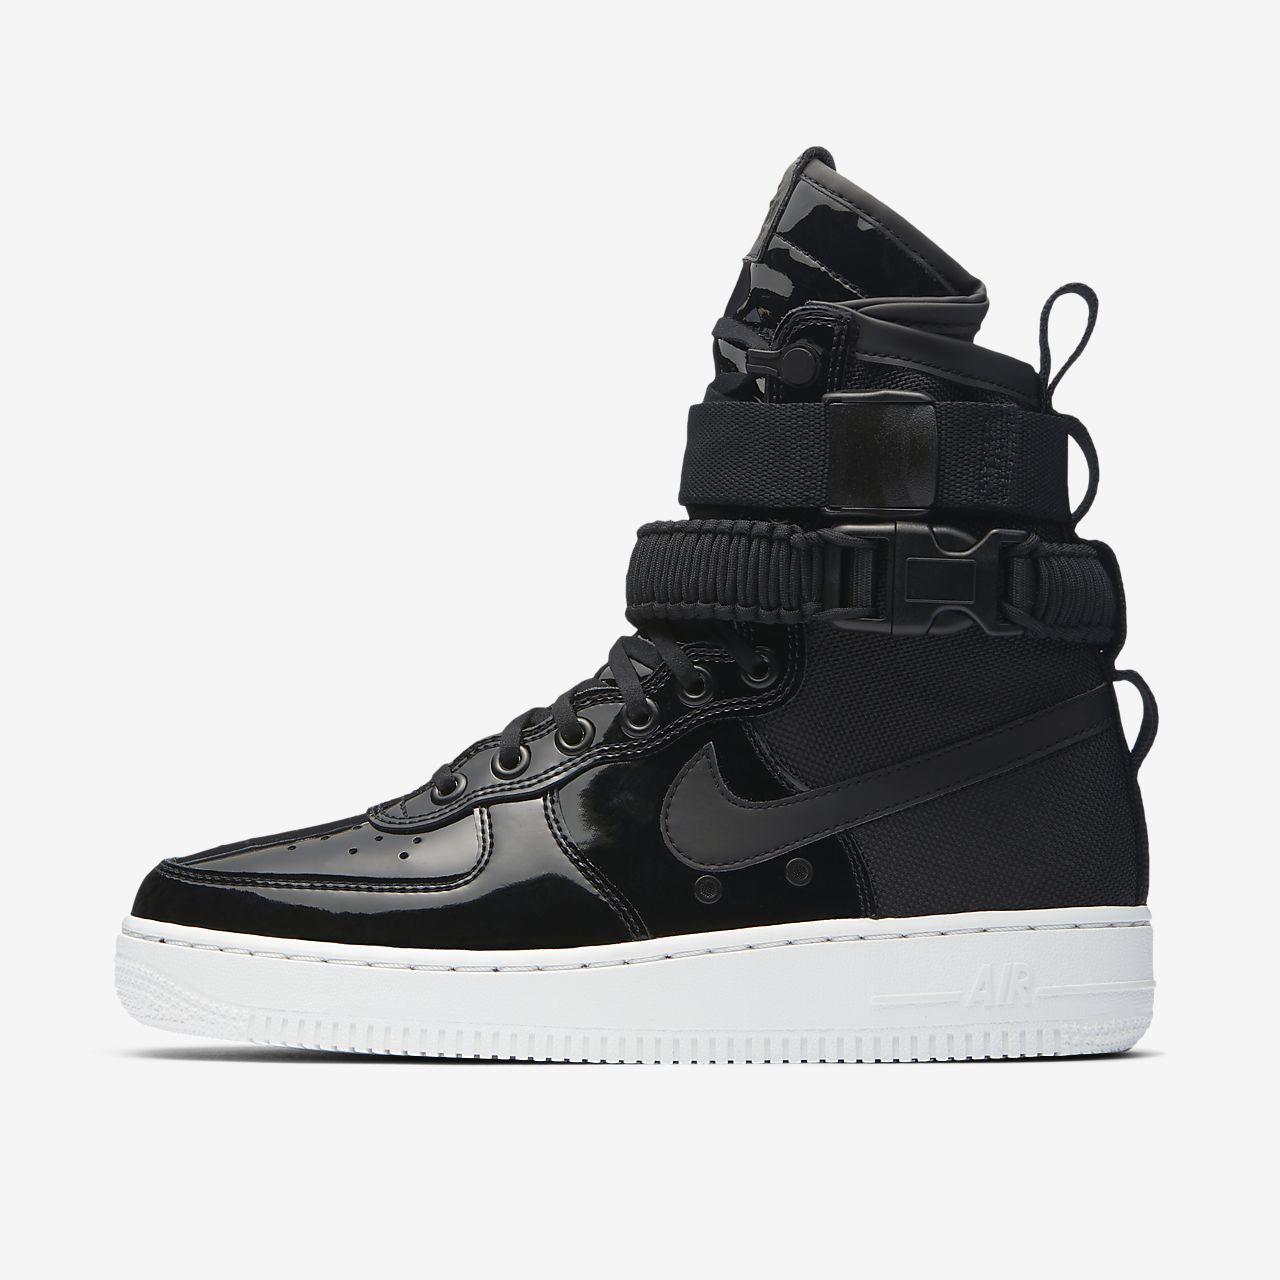 nike sf air force 1 mid men's nz